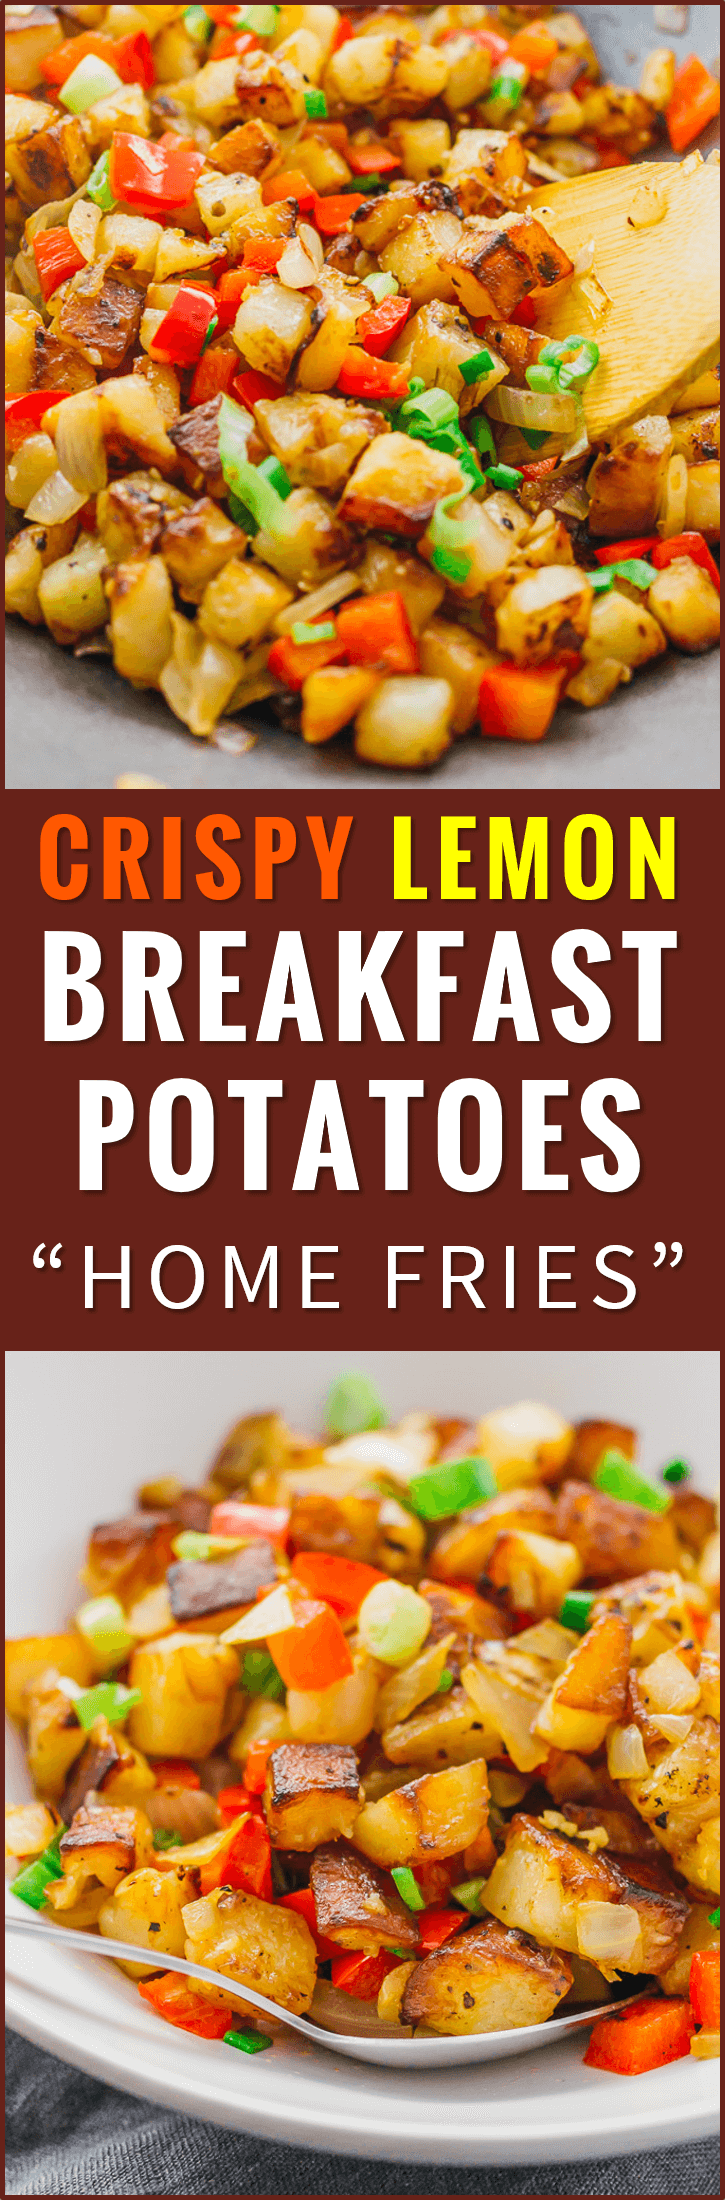 These skillet breakfast potatoes or diner-style